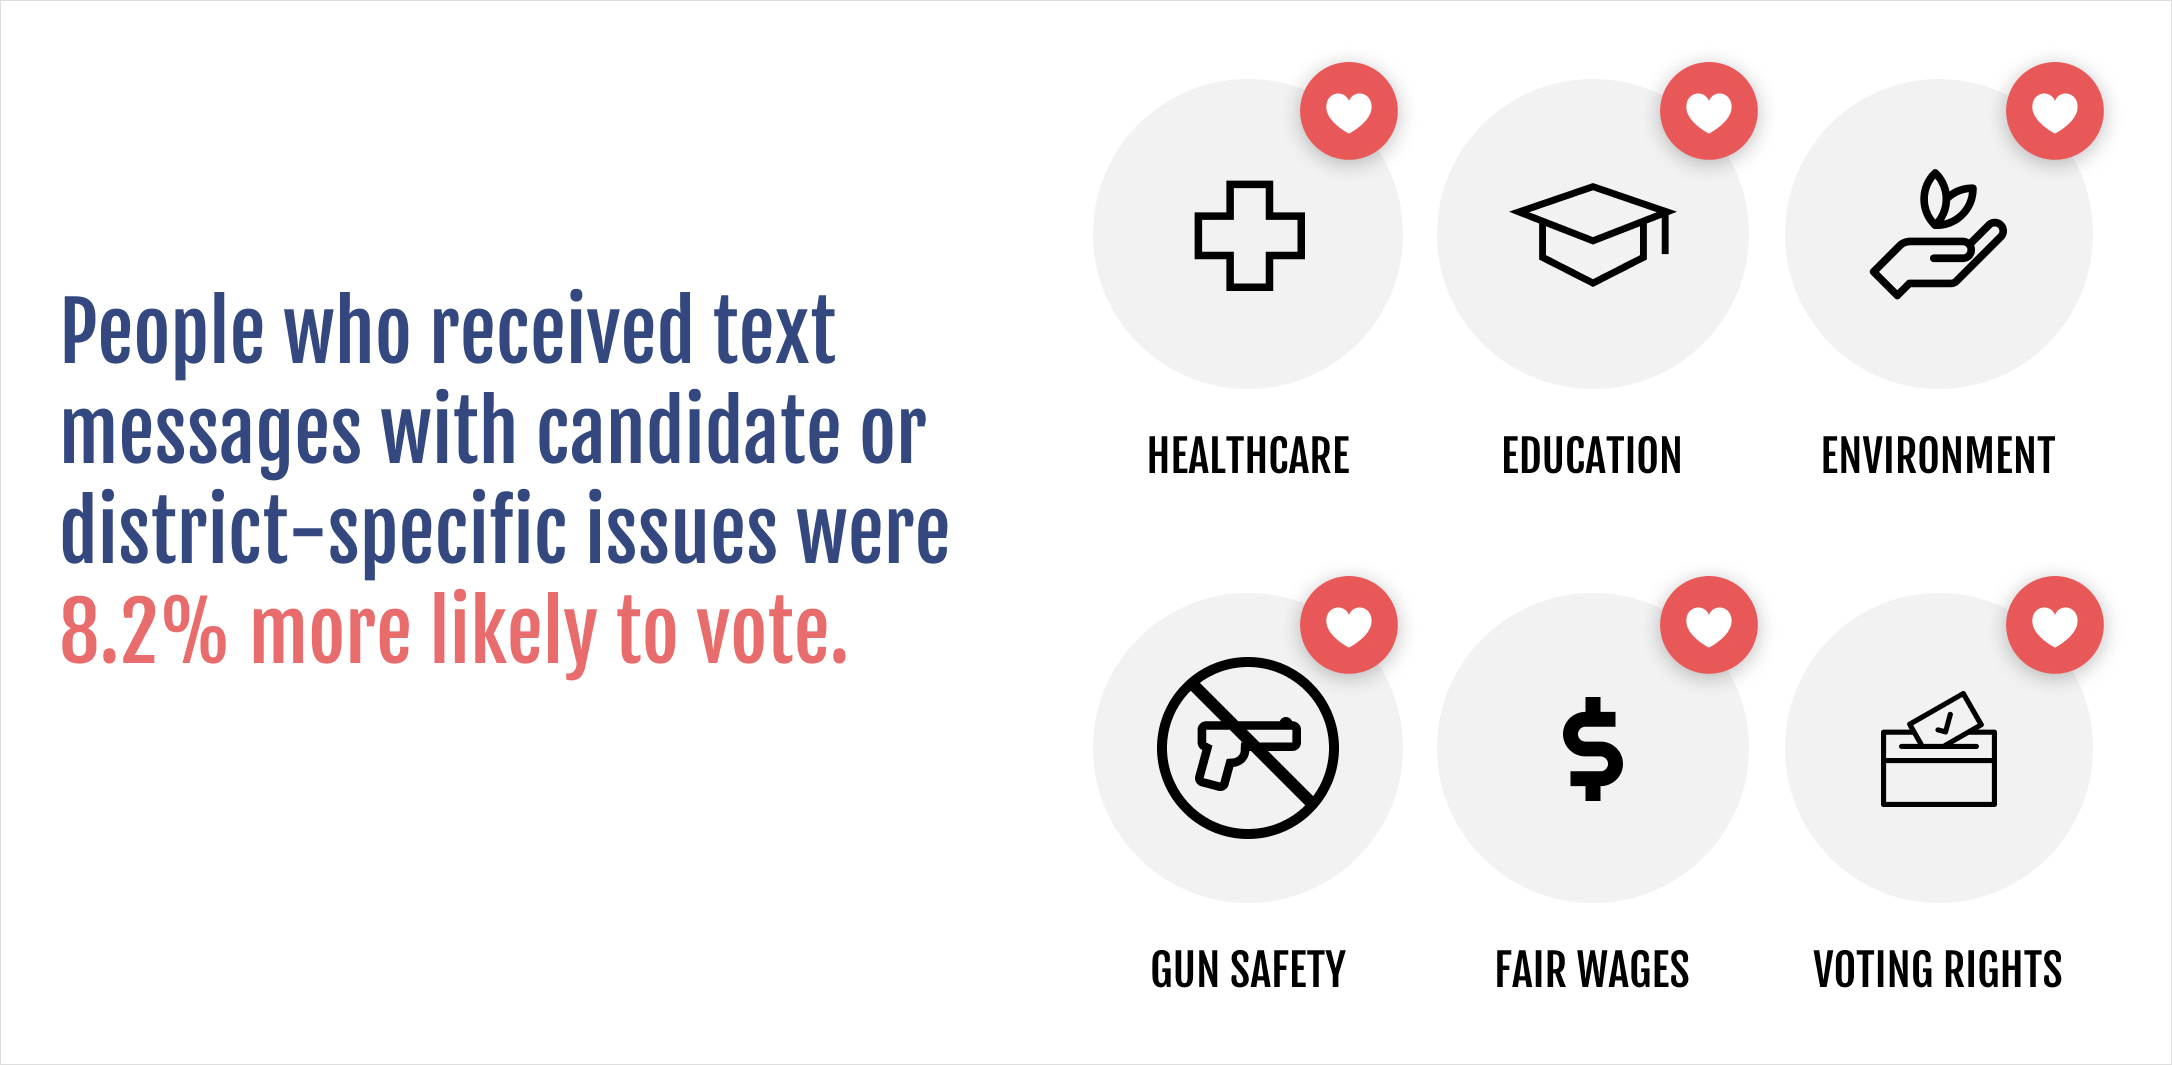 People who received text messages with candidate or district-specific issues were 8.2% more likely to vote